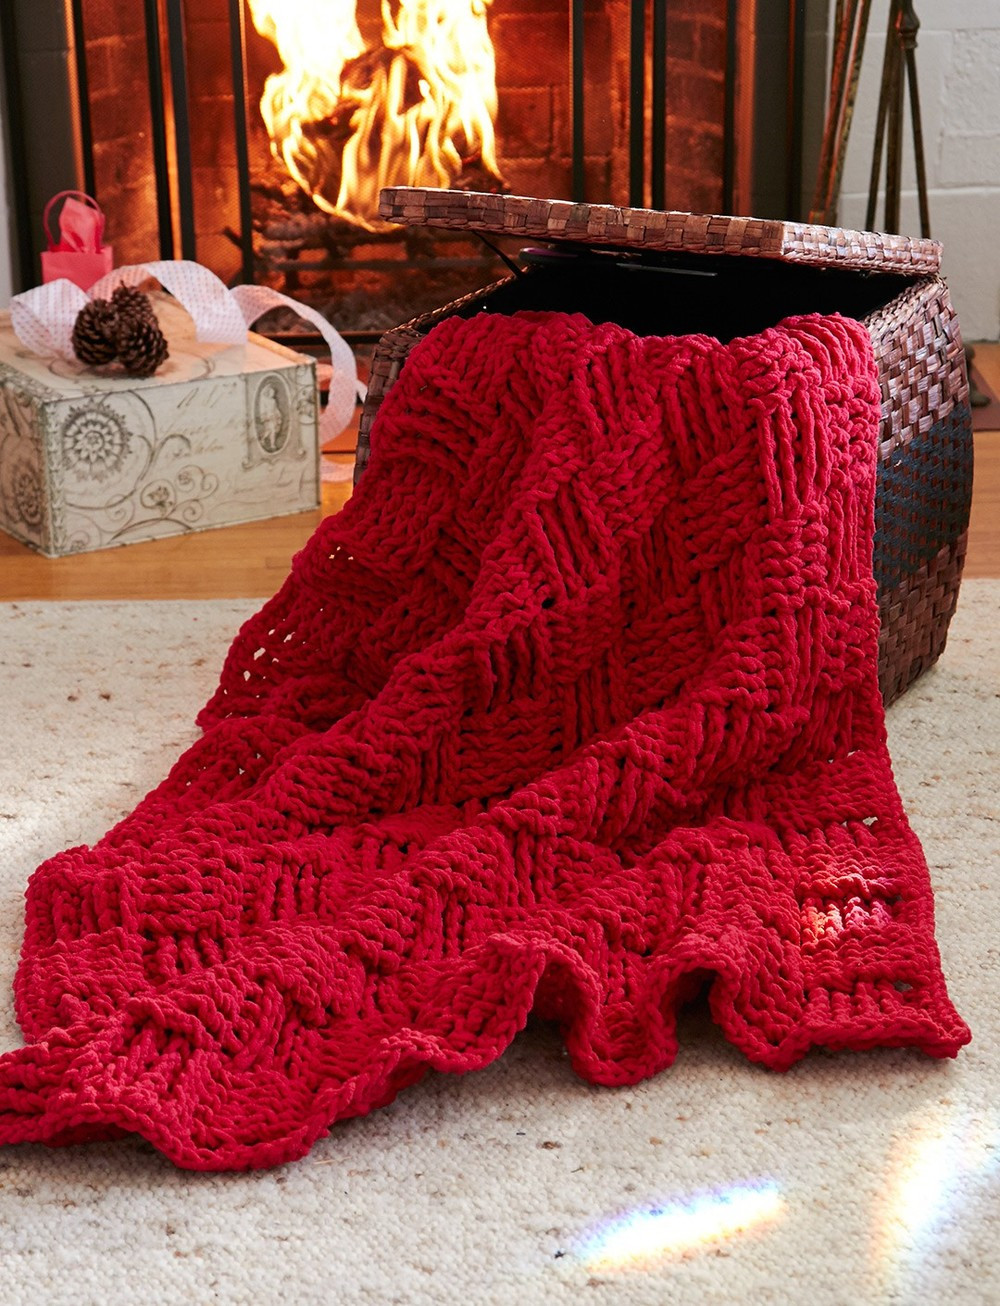 Unique Cranberry Basketweave Throw Crochet Throw Blanket Patterns Free Of Incredible 43 Ideas Crochet Throw Blanket Patterns Free